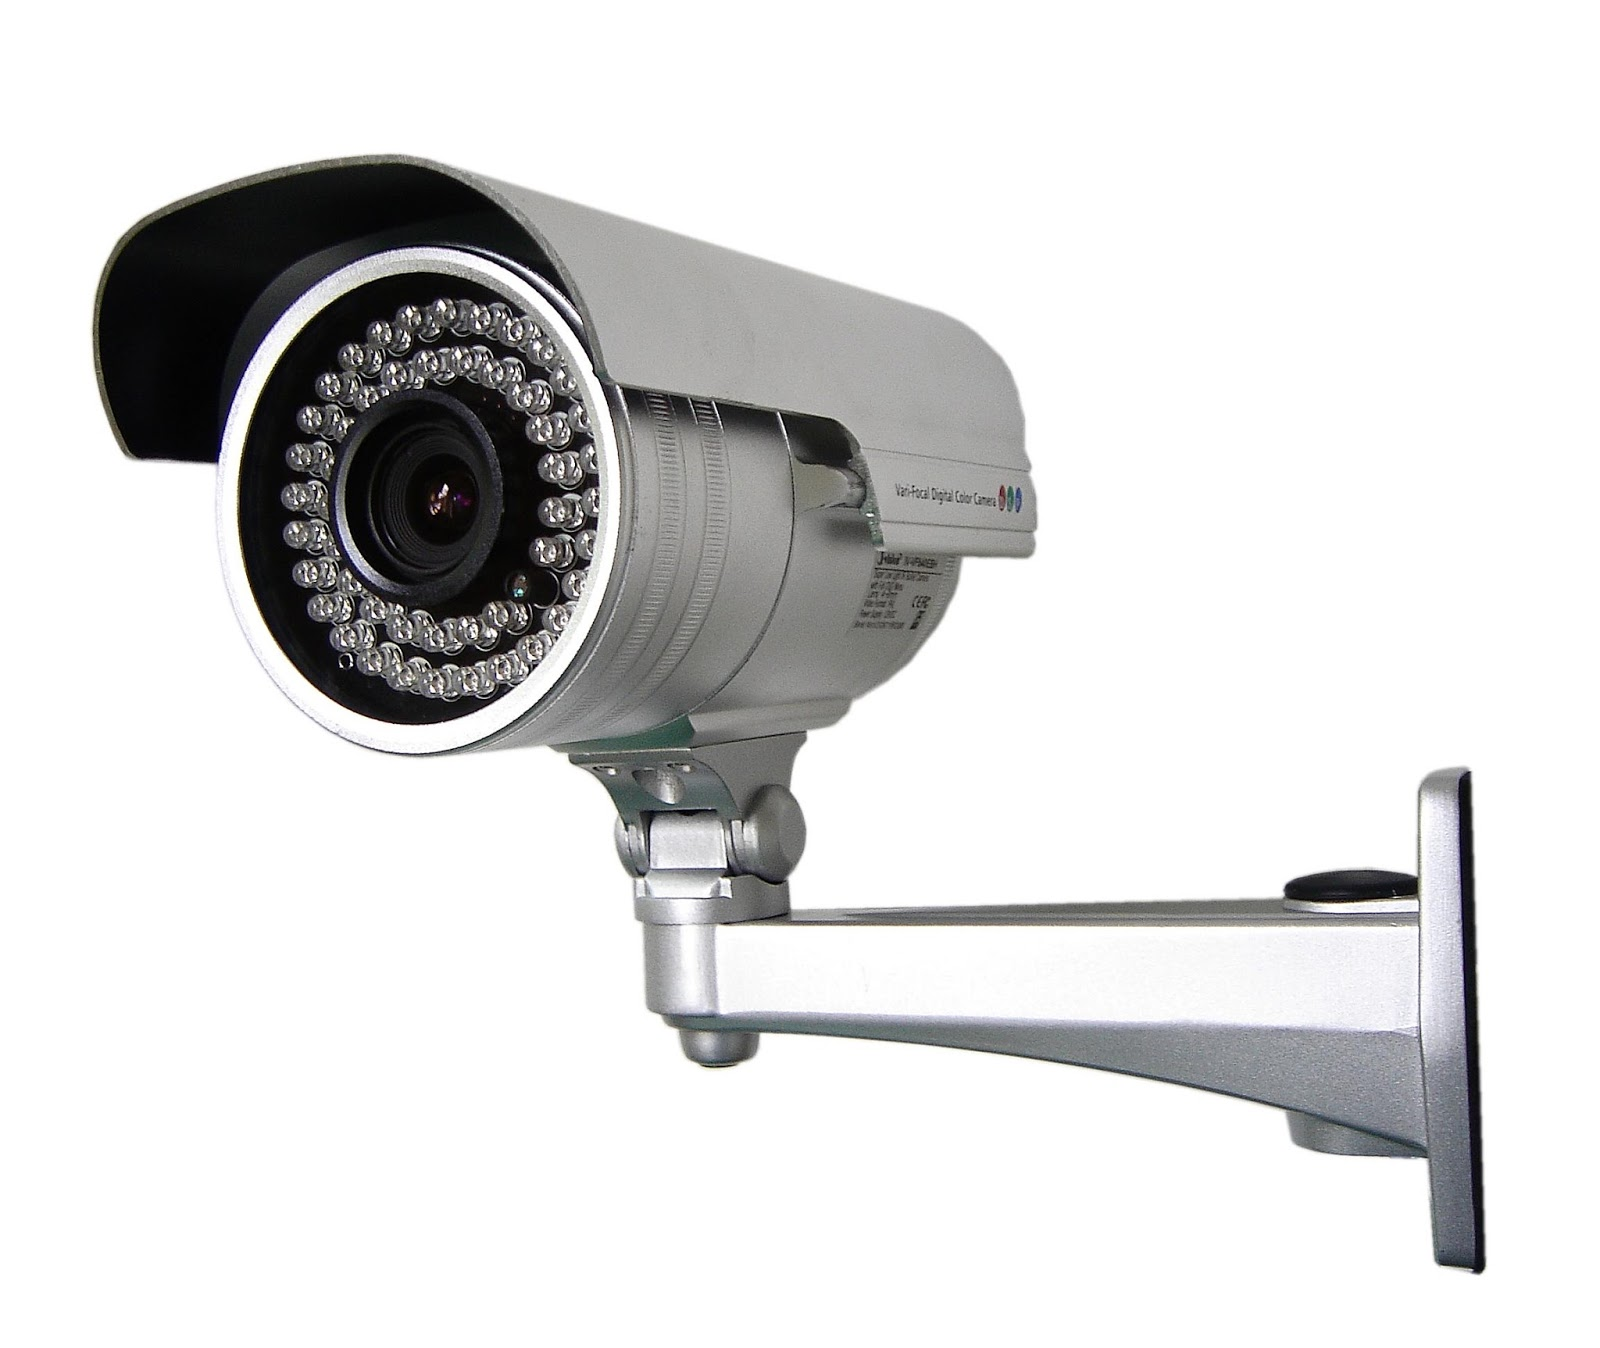 surveillance cameras   video search engine at search